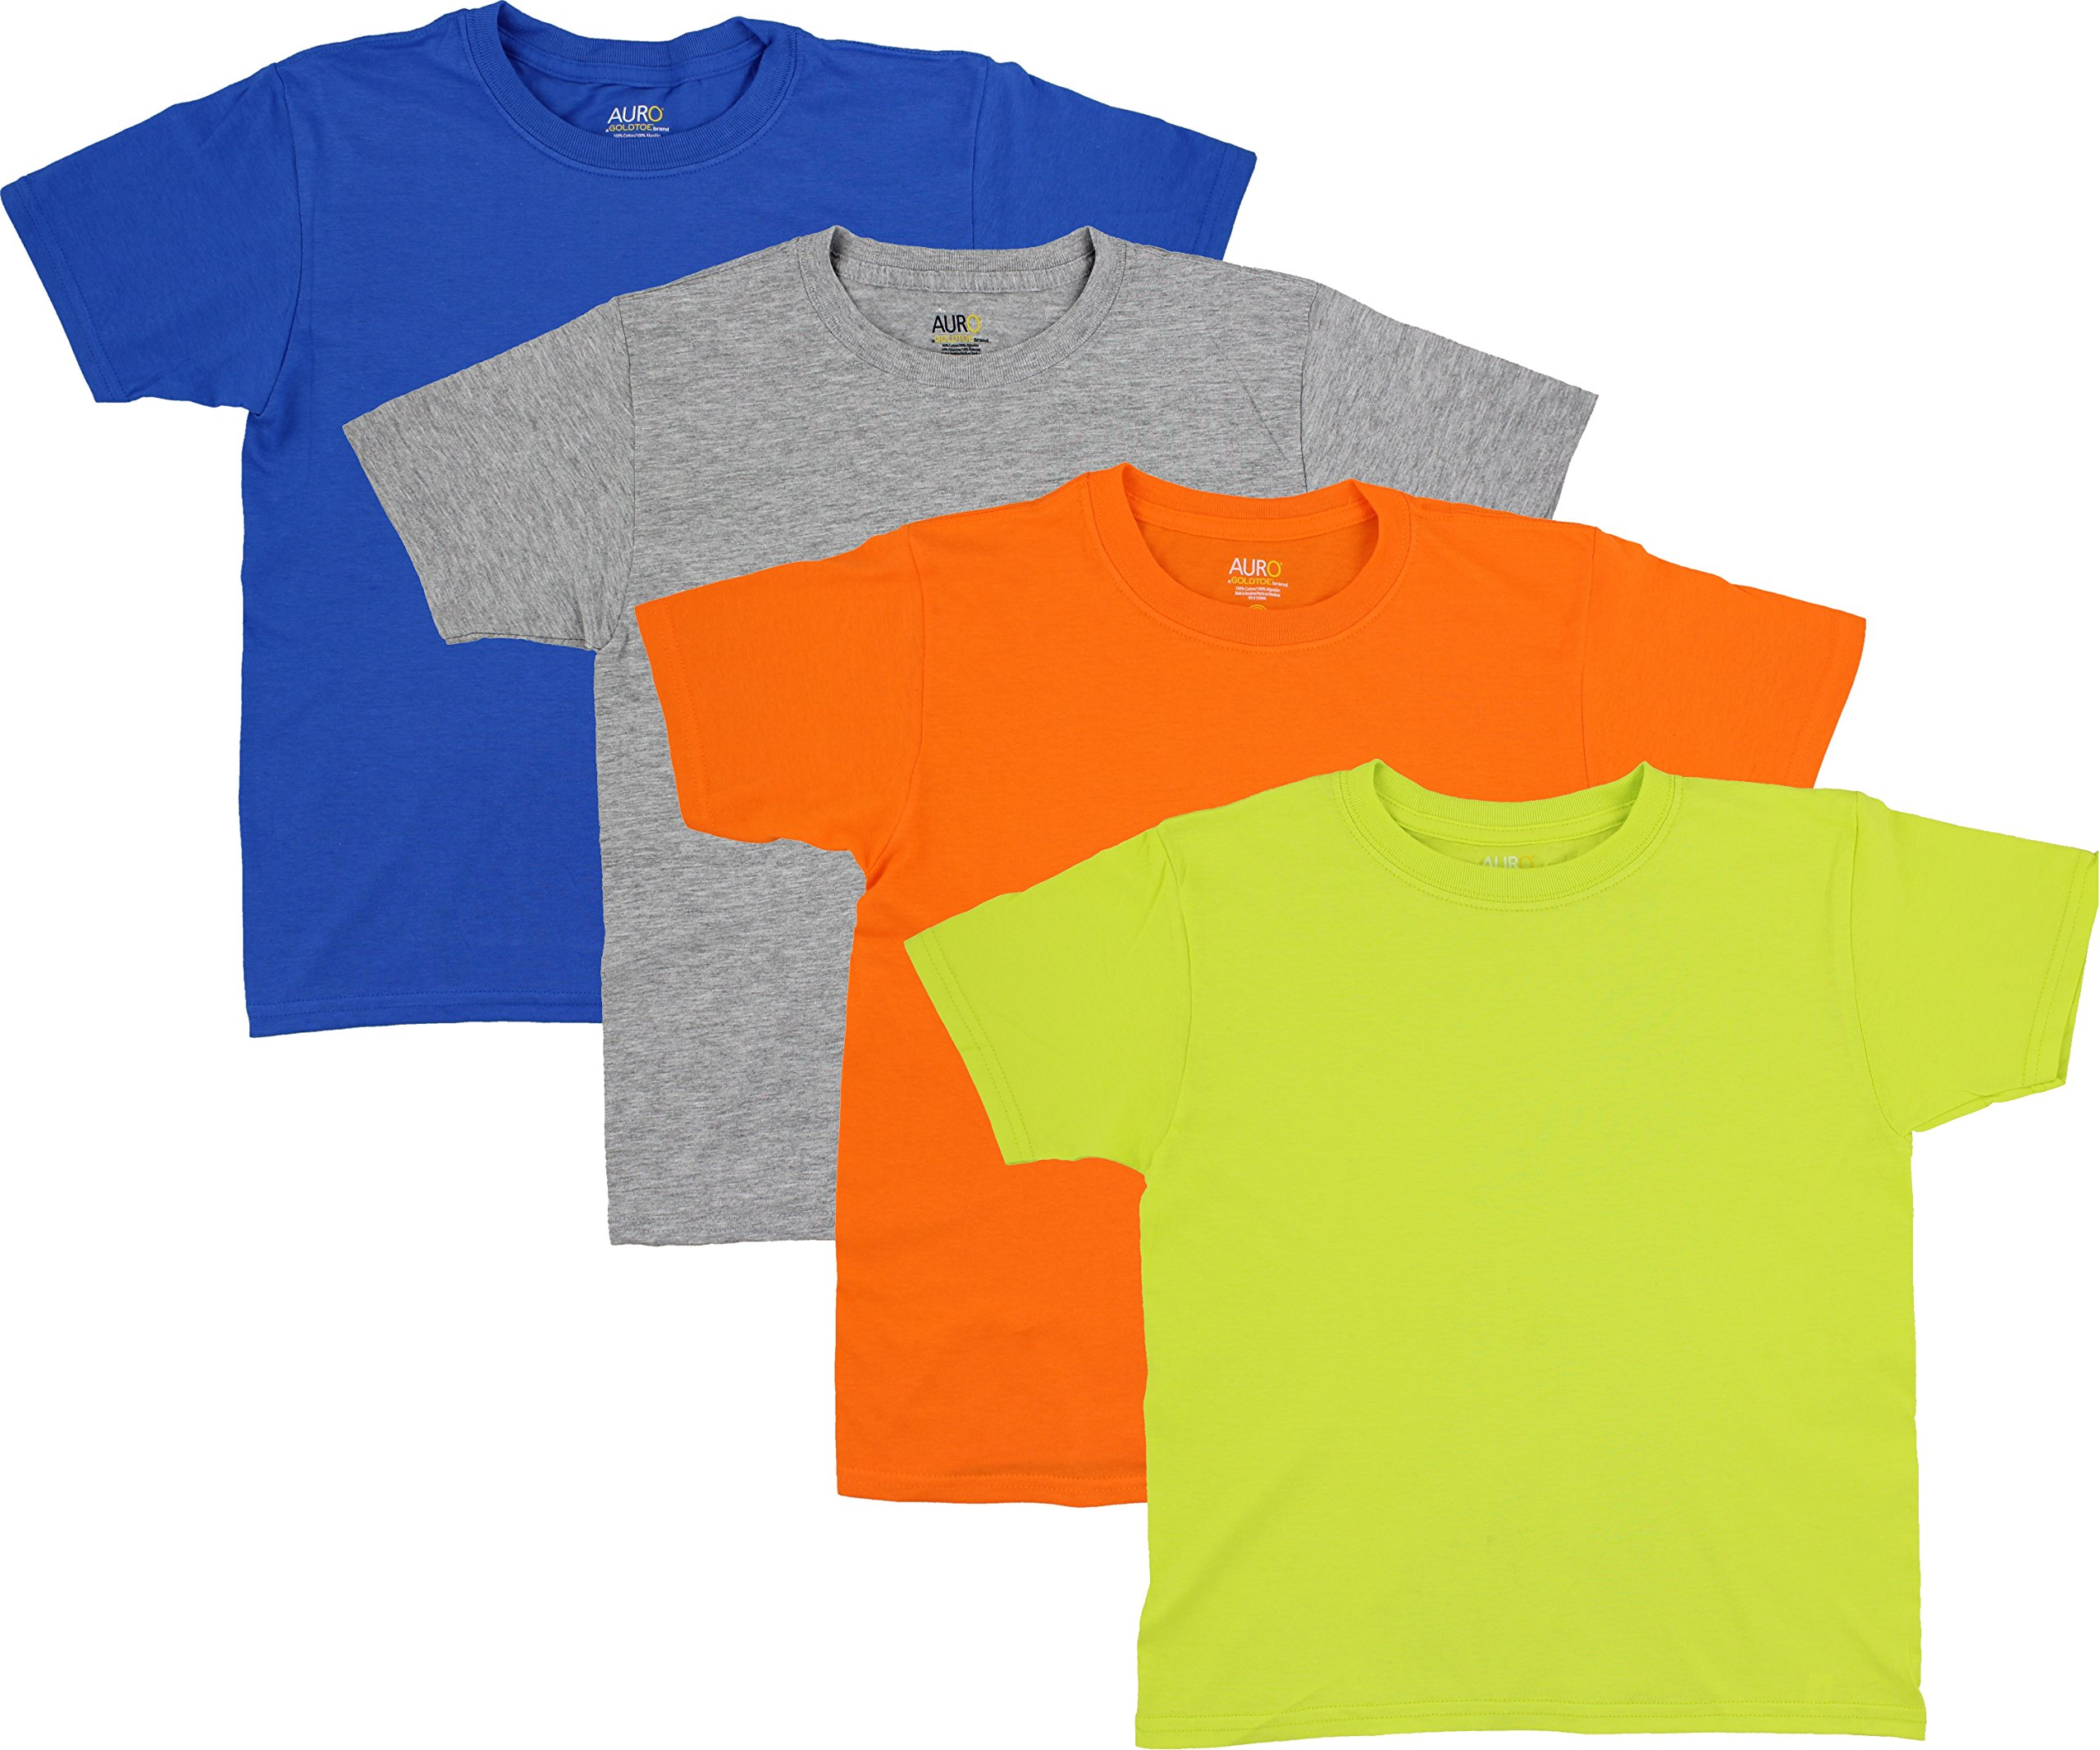 AURO Boys Premium Cotton Comfort Crew Neck Tees - 4 Pack, XS